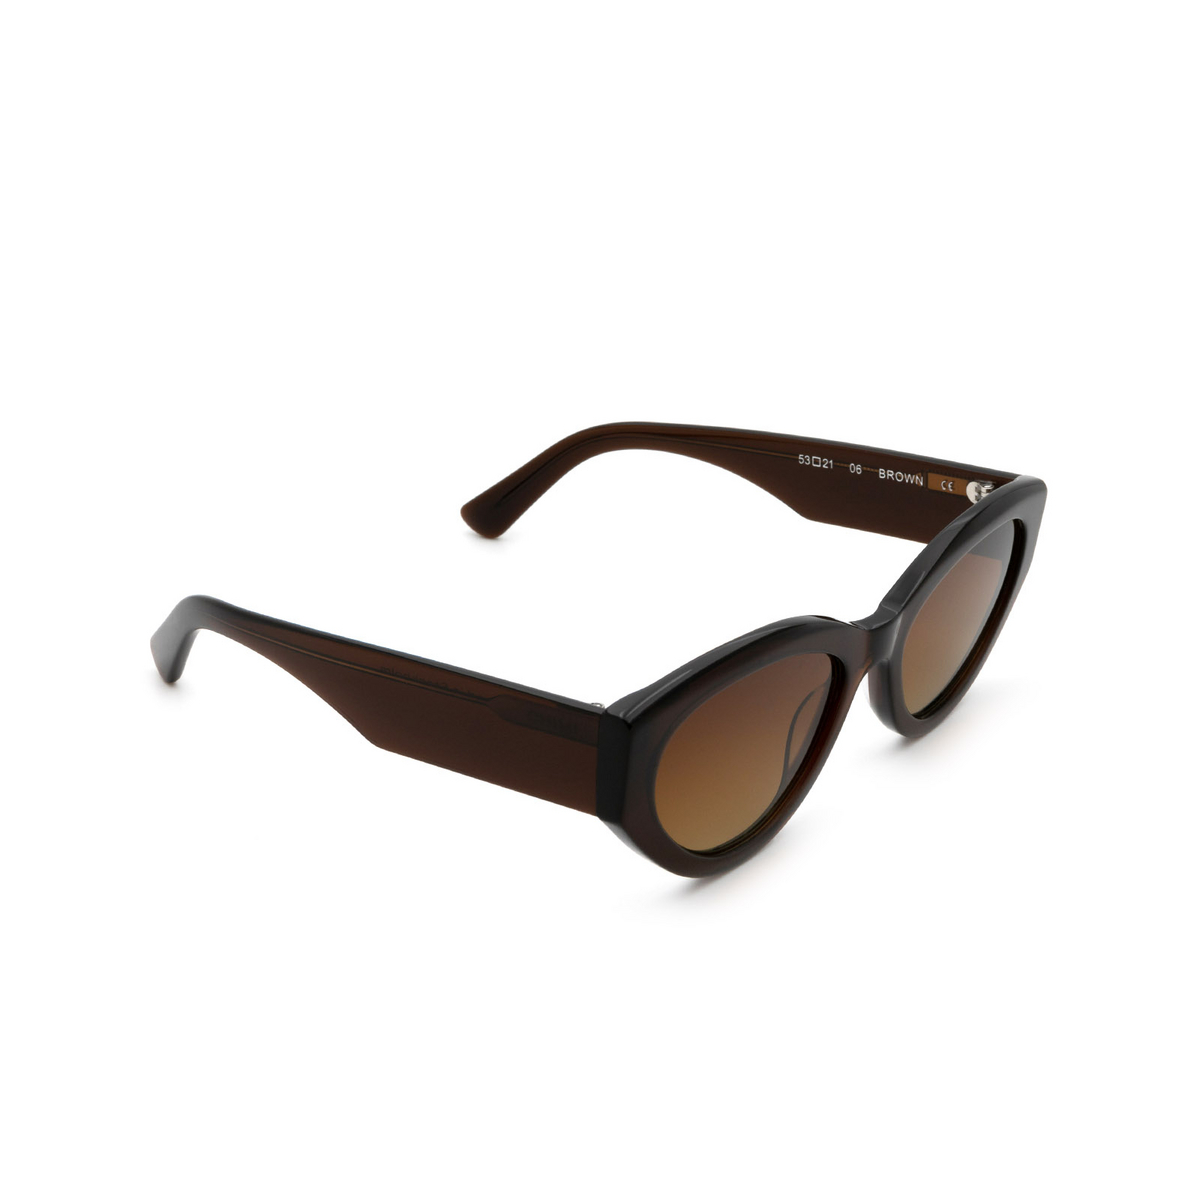 Chimi® Cat-eye Sunglasses: 06 color Brown - three-quarters view.